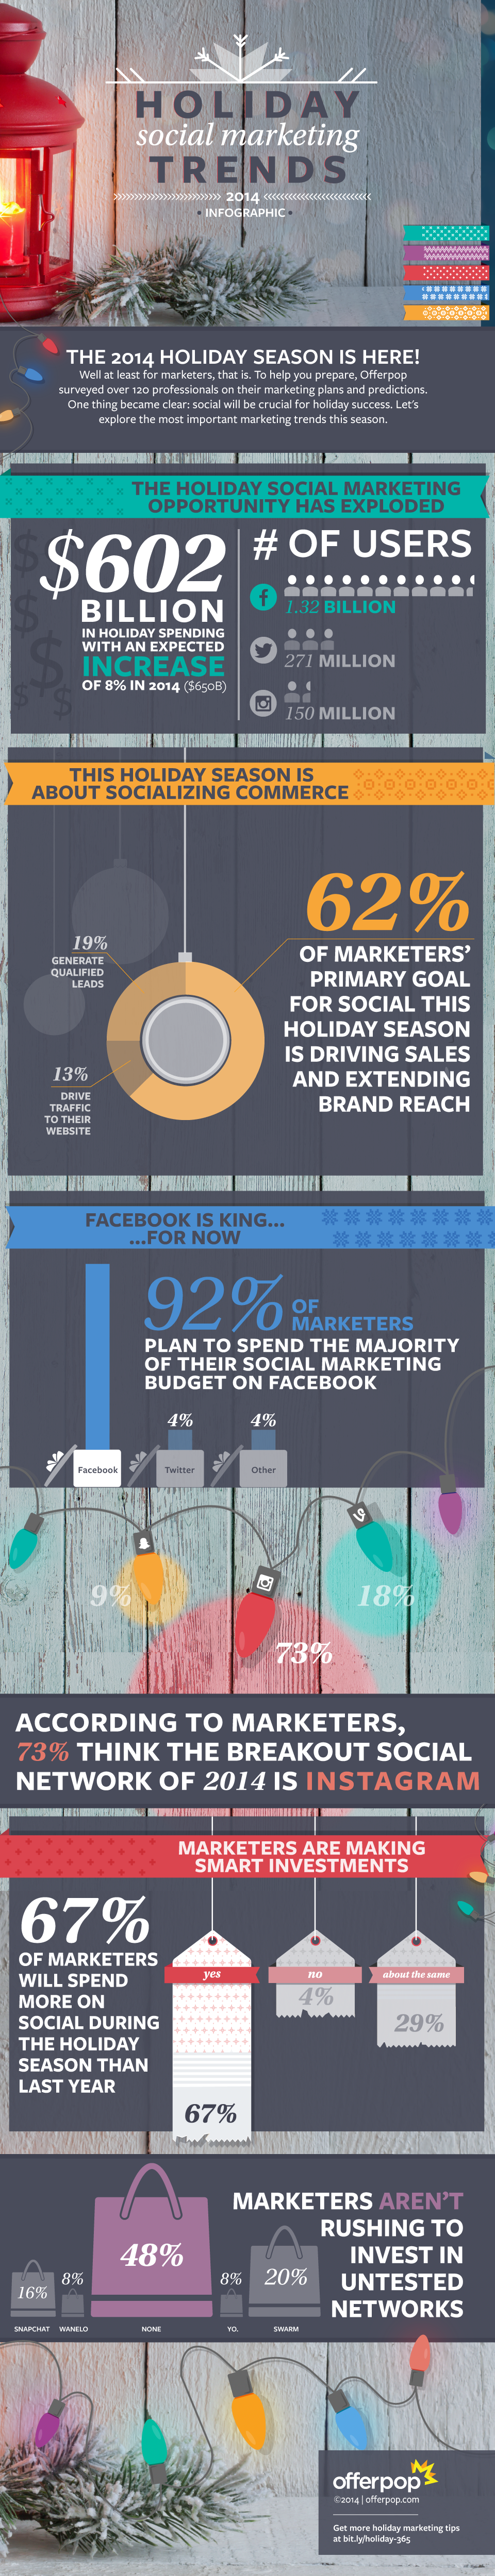 offerpop-holiday-trends-infographic